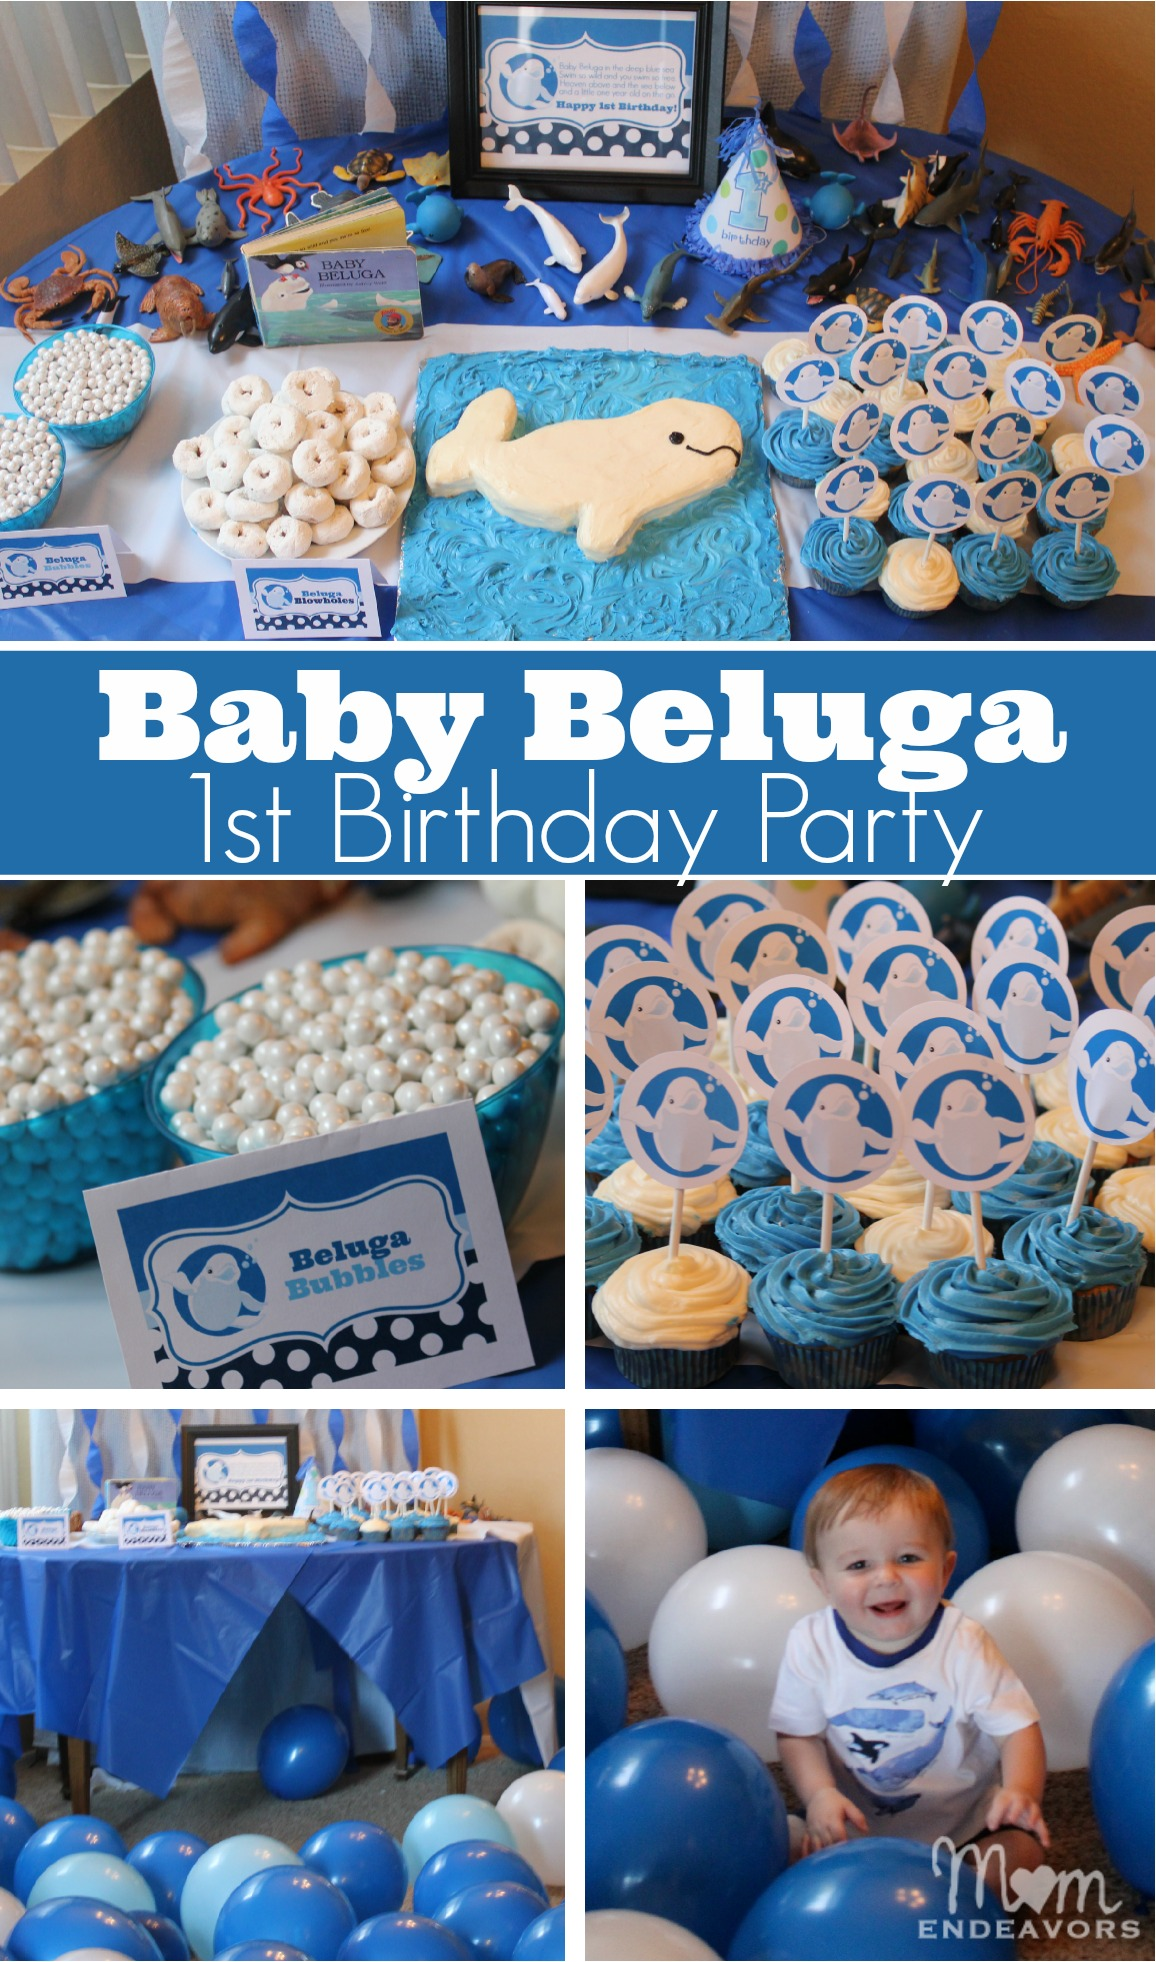 Baby beluga 1st birthday party for Baby birthday ideas of decoration